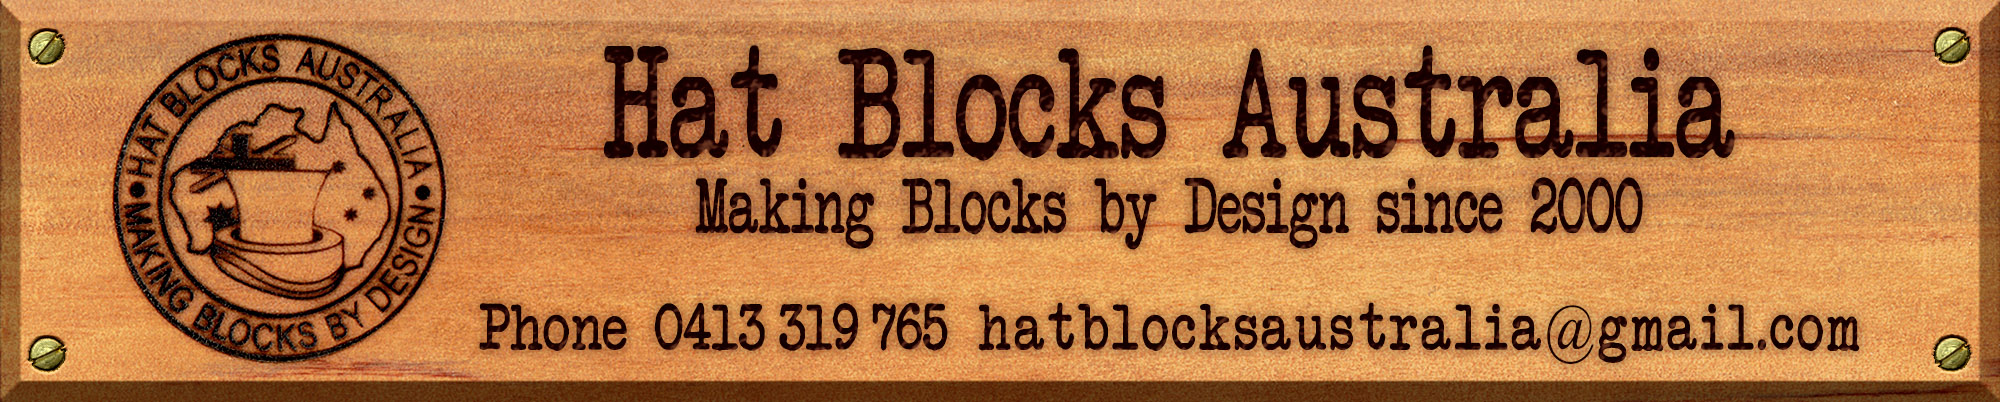 hat blocks australia BIG BANNER.jpg